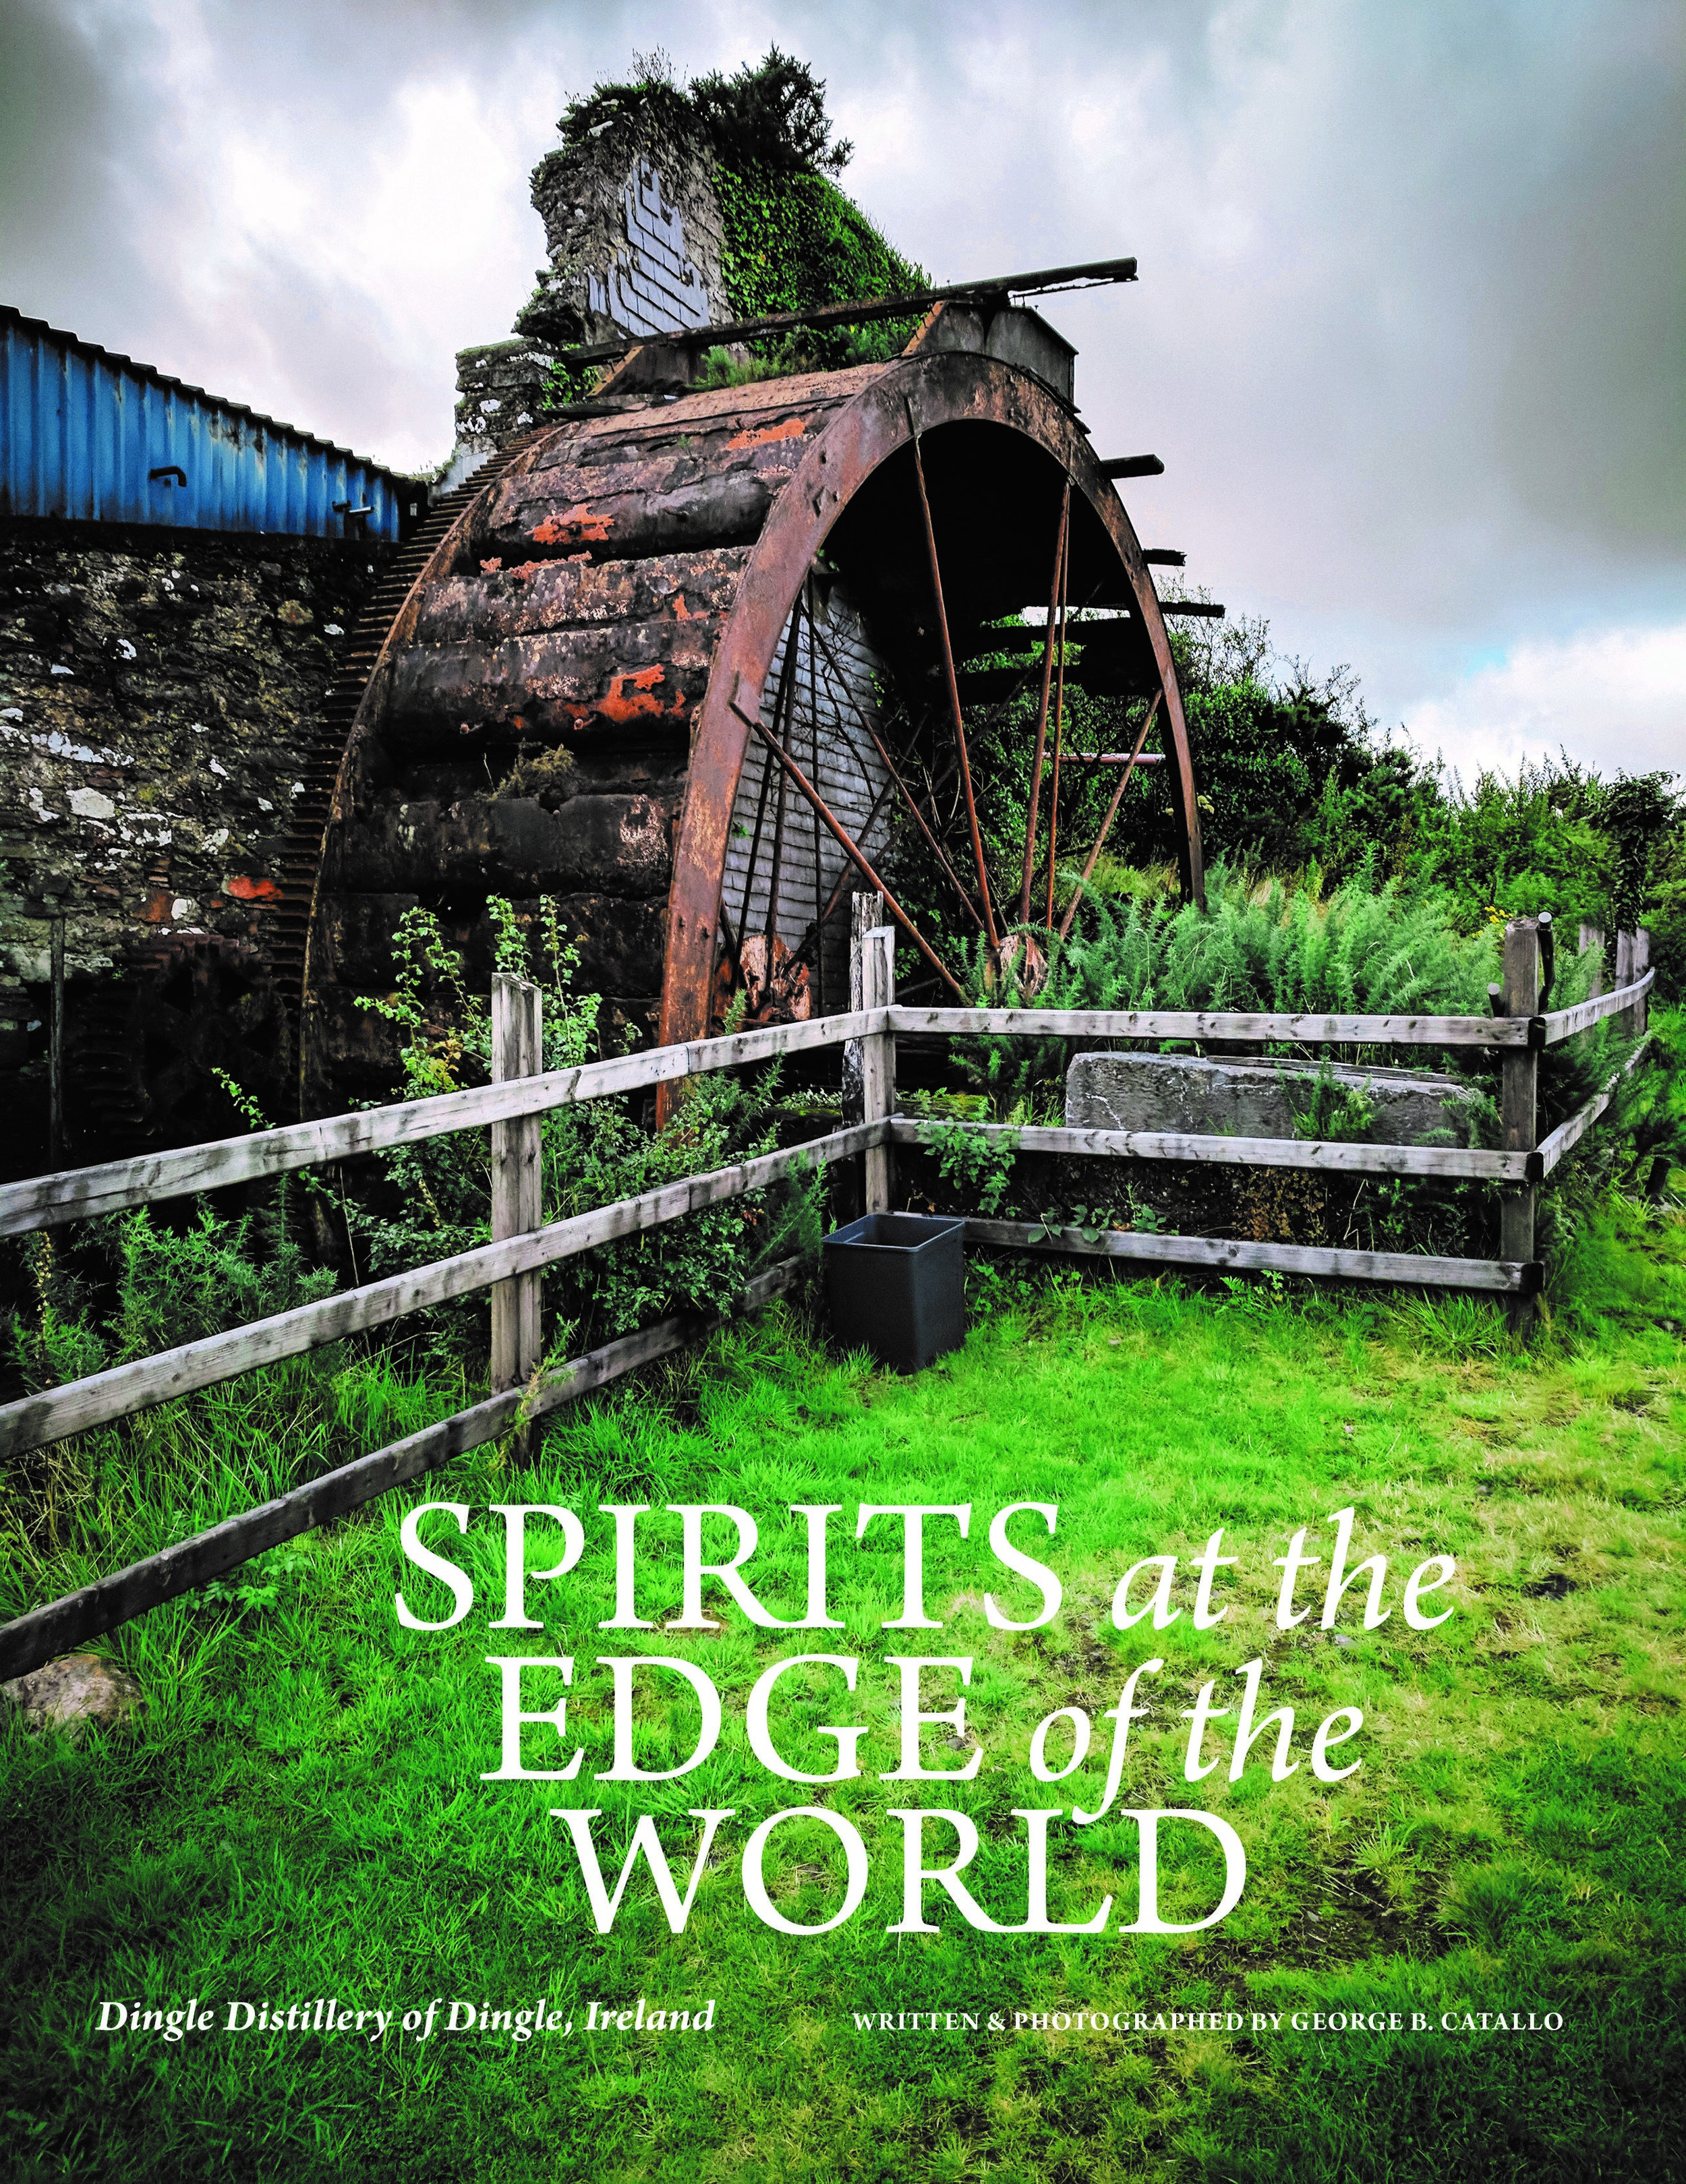 Spirits at the edgeof the world - Dingle Distillery SpotlightArtisan Spirit MagazineIssue 25, Winter 2018, Page 115